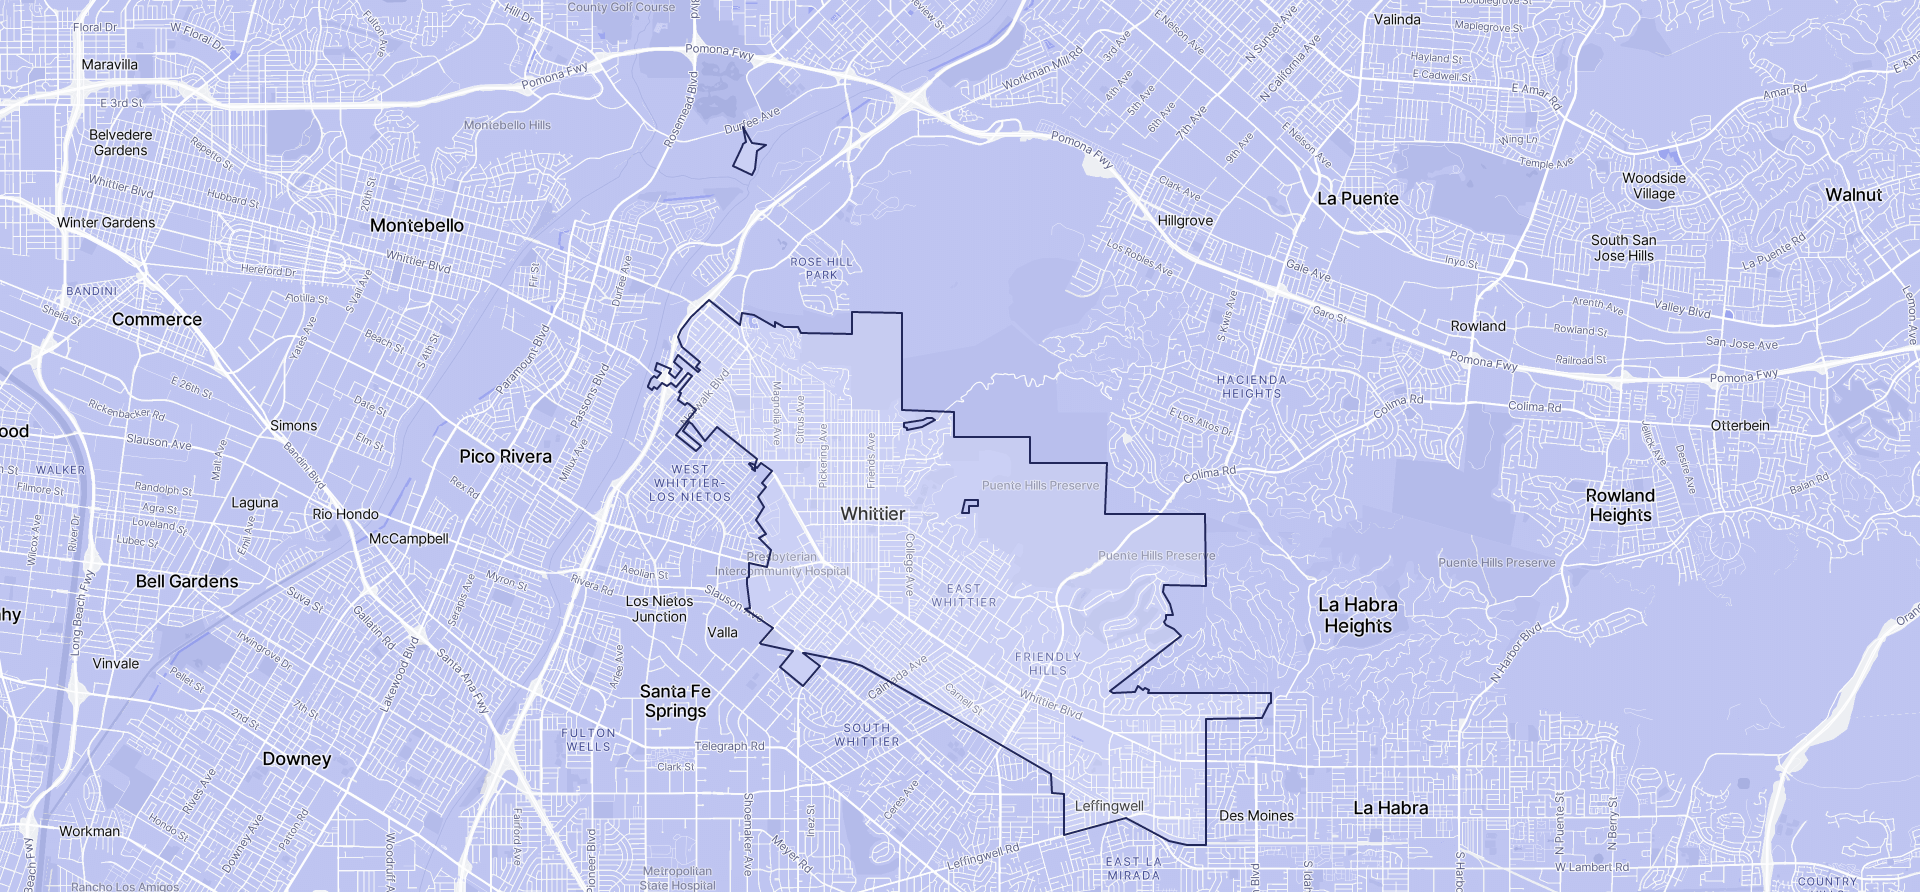 Image of Whittier boundaries on a map.